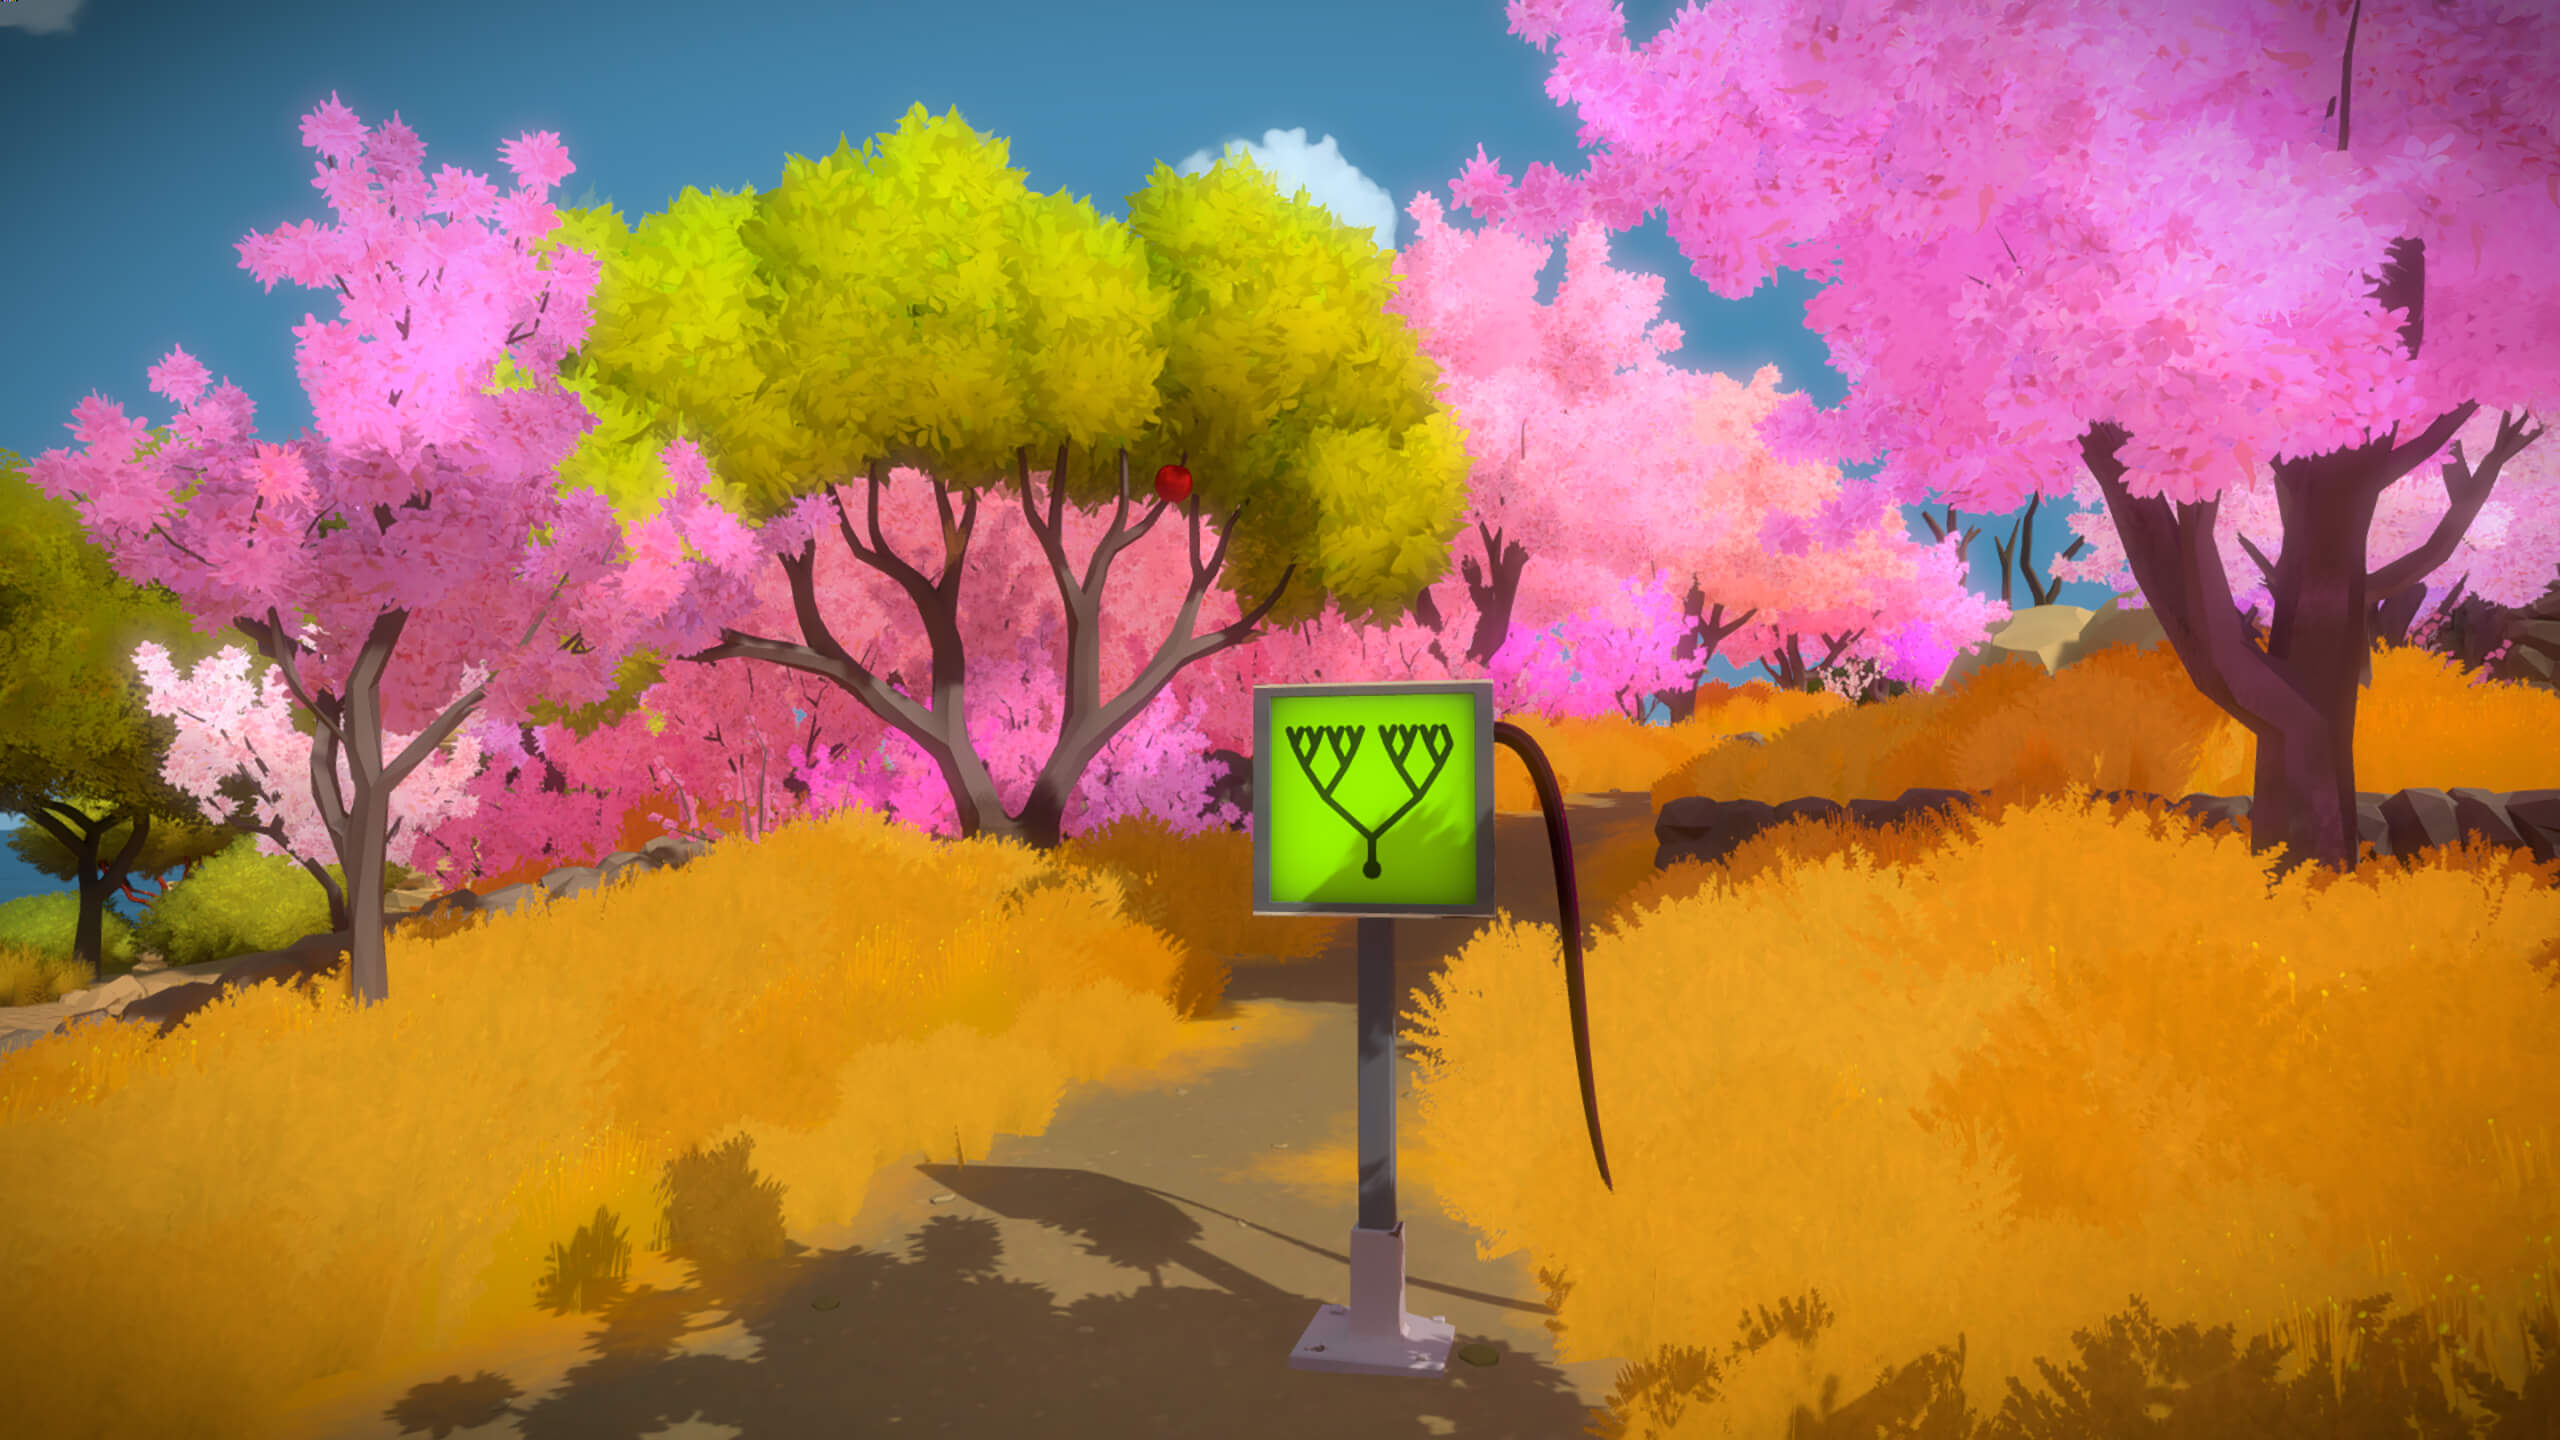 A puzzle interface presented in the witness